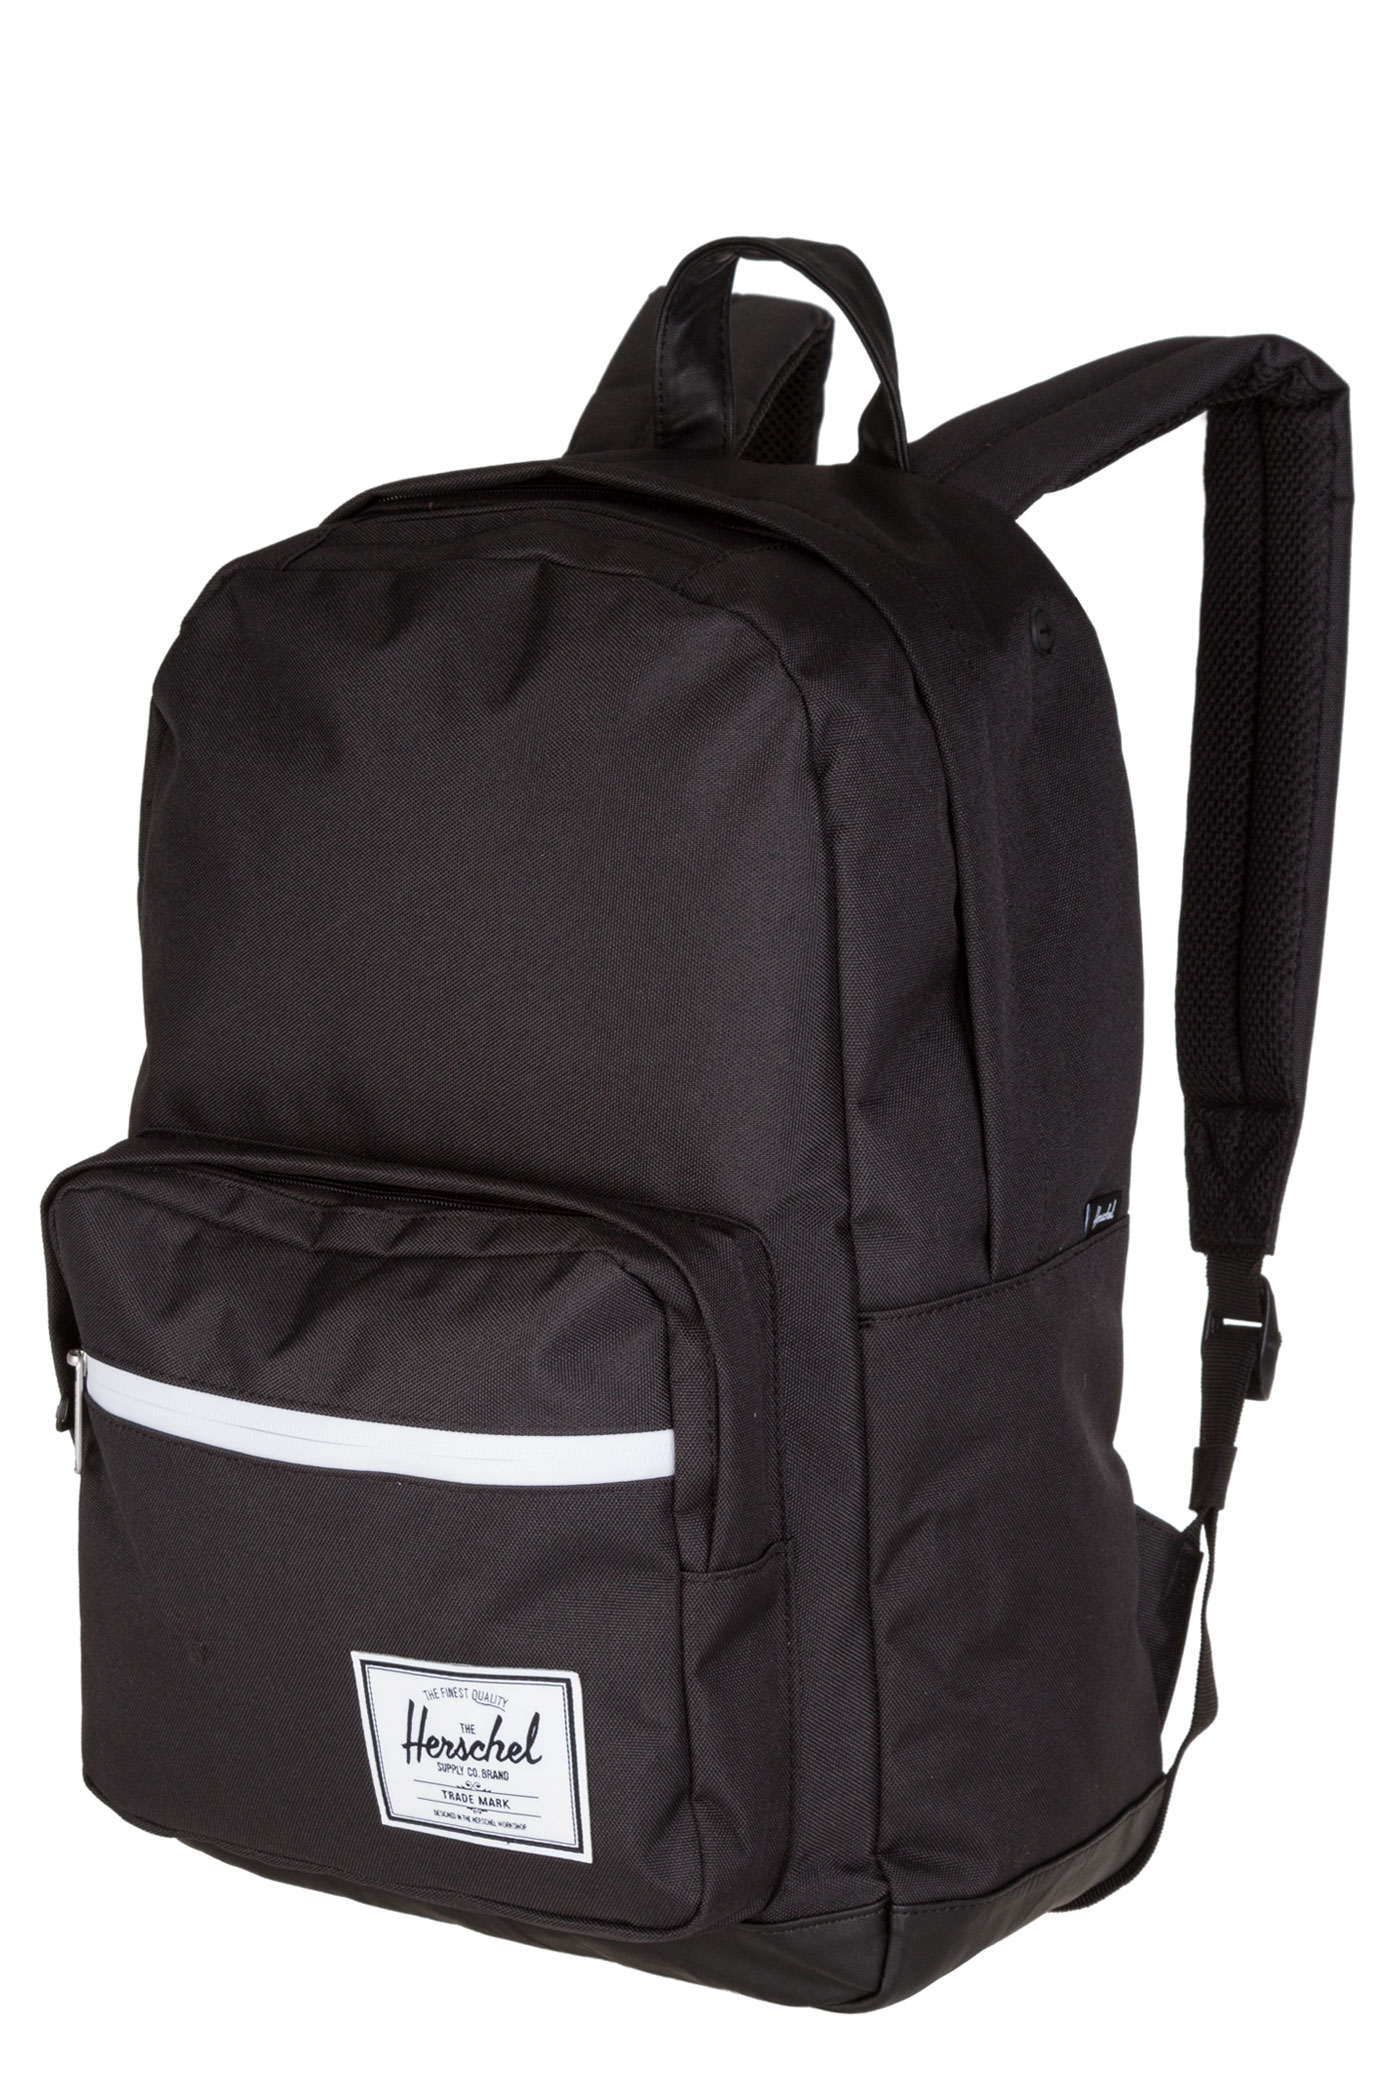 Herschel Pop Quiz Leather Backpack 22L (black black) buy ...